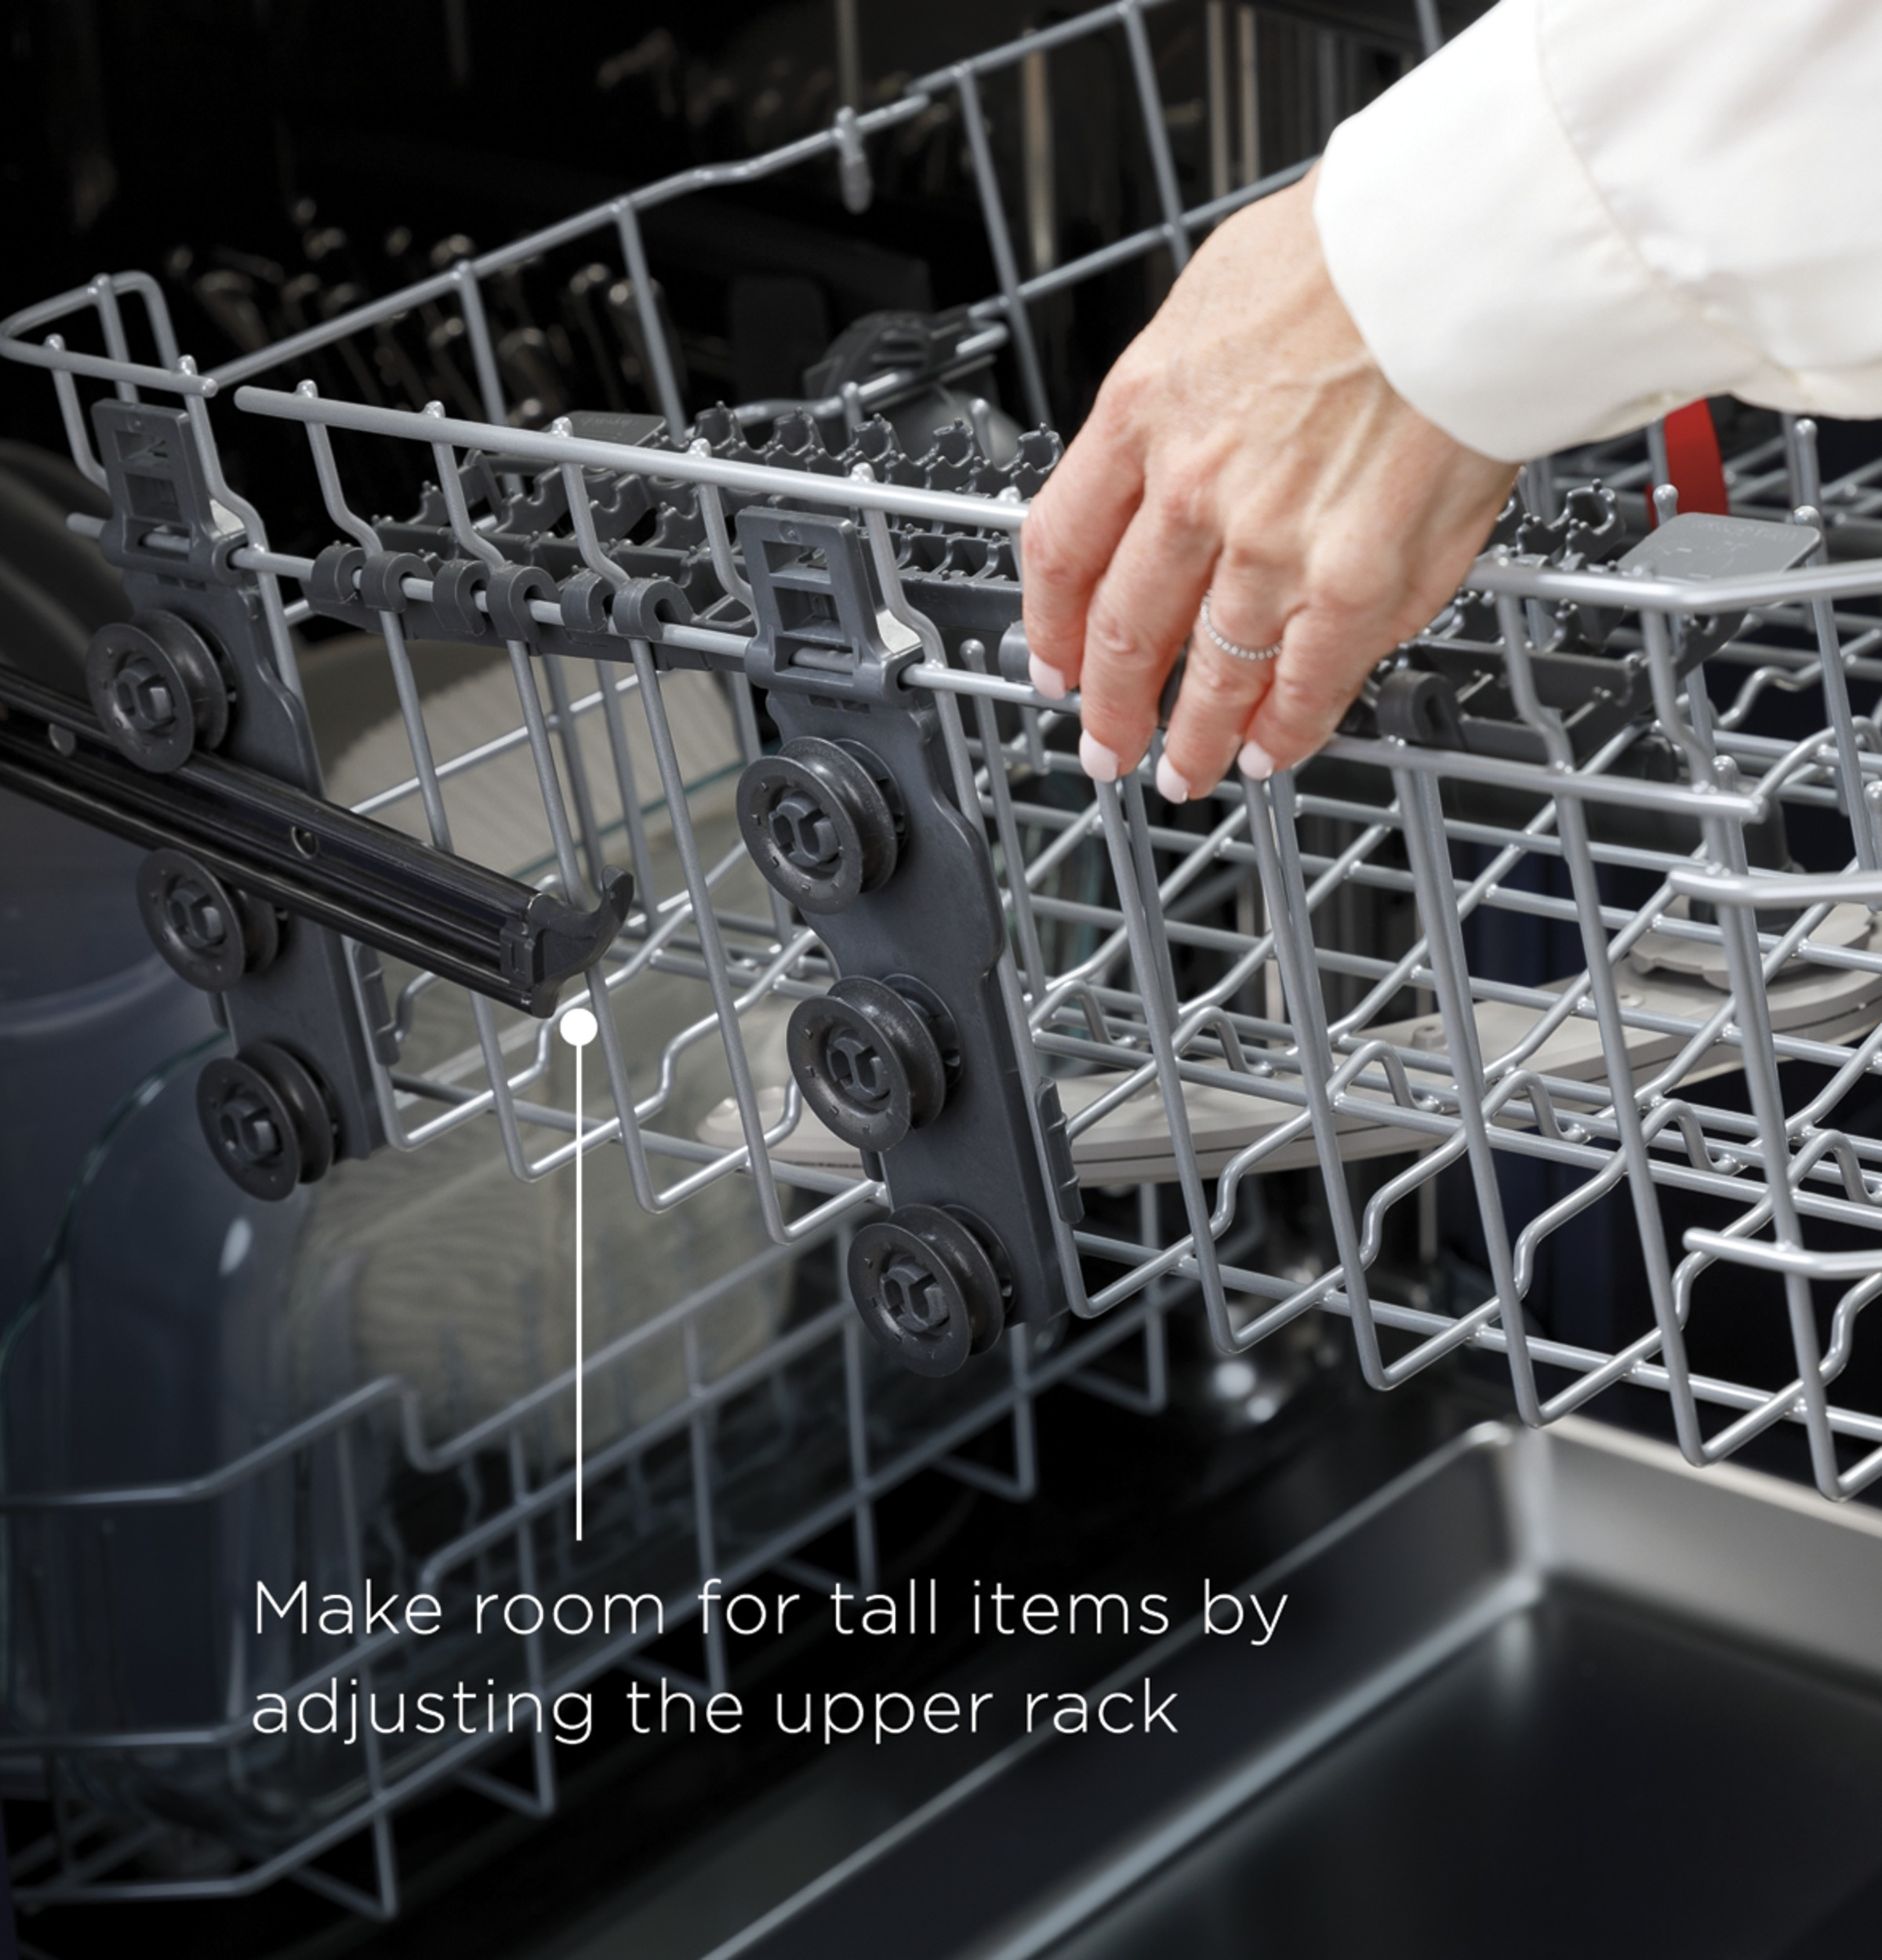 Model: GDF645SGNBB | GE GE® Stainless Steel Interior Dishwasher with Front Controls